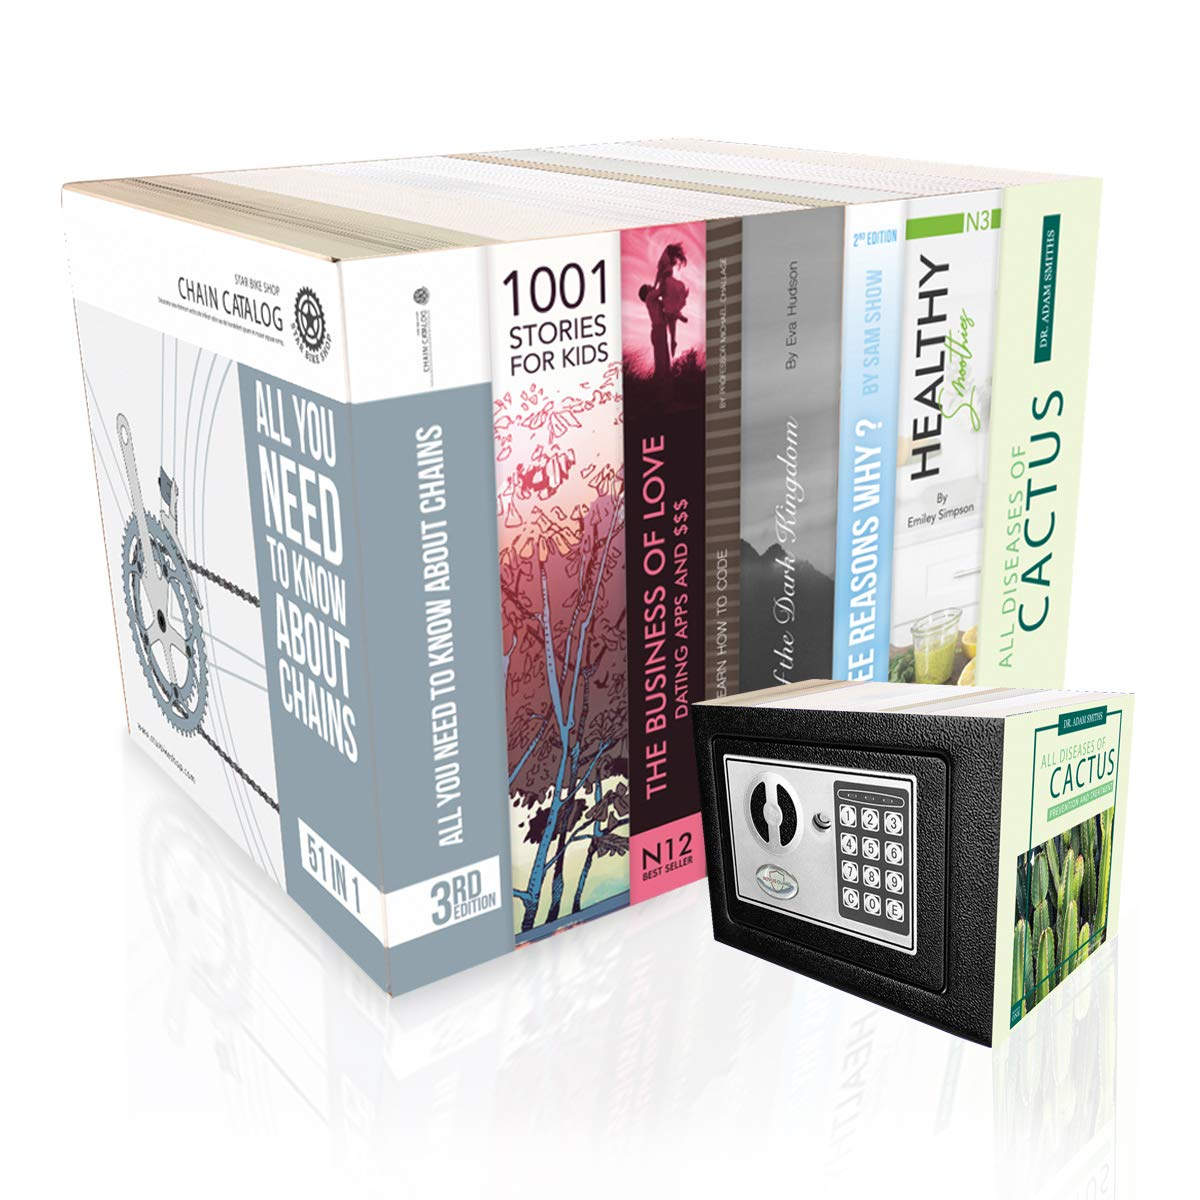 Security Safe in Books Disguise | Electronic Digital Keypad and Backup Keys | Small and Personal Perfect for Home or Office or Dorm with diversion disguise Great for hiding money, cash or valuables